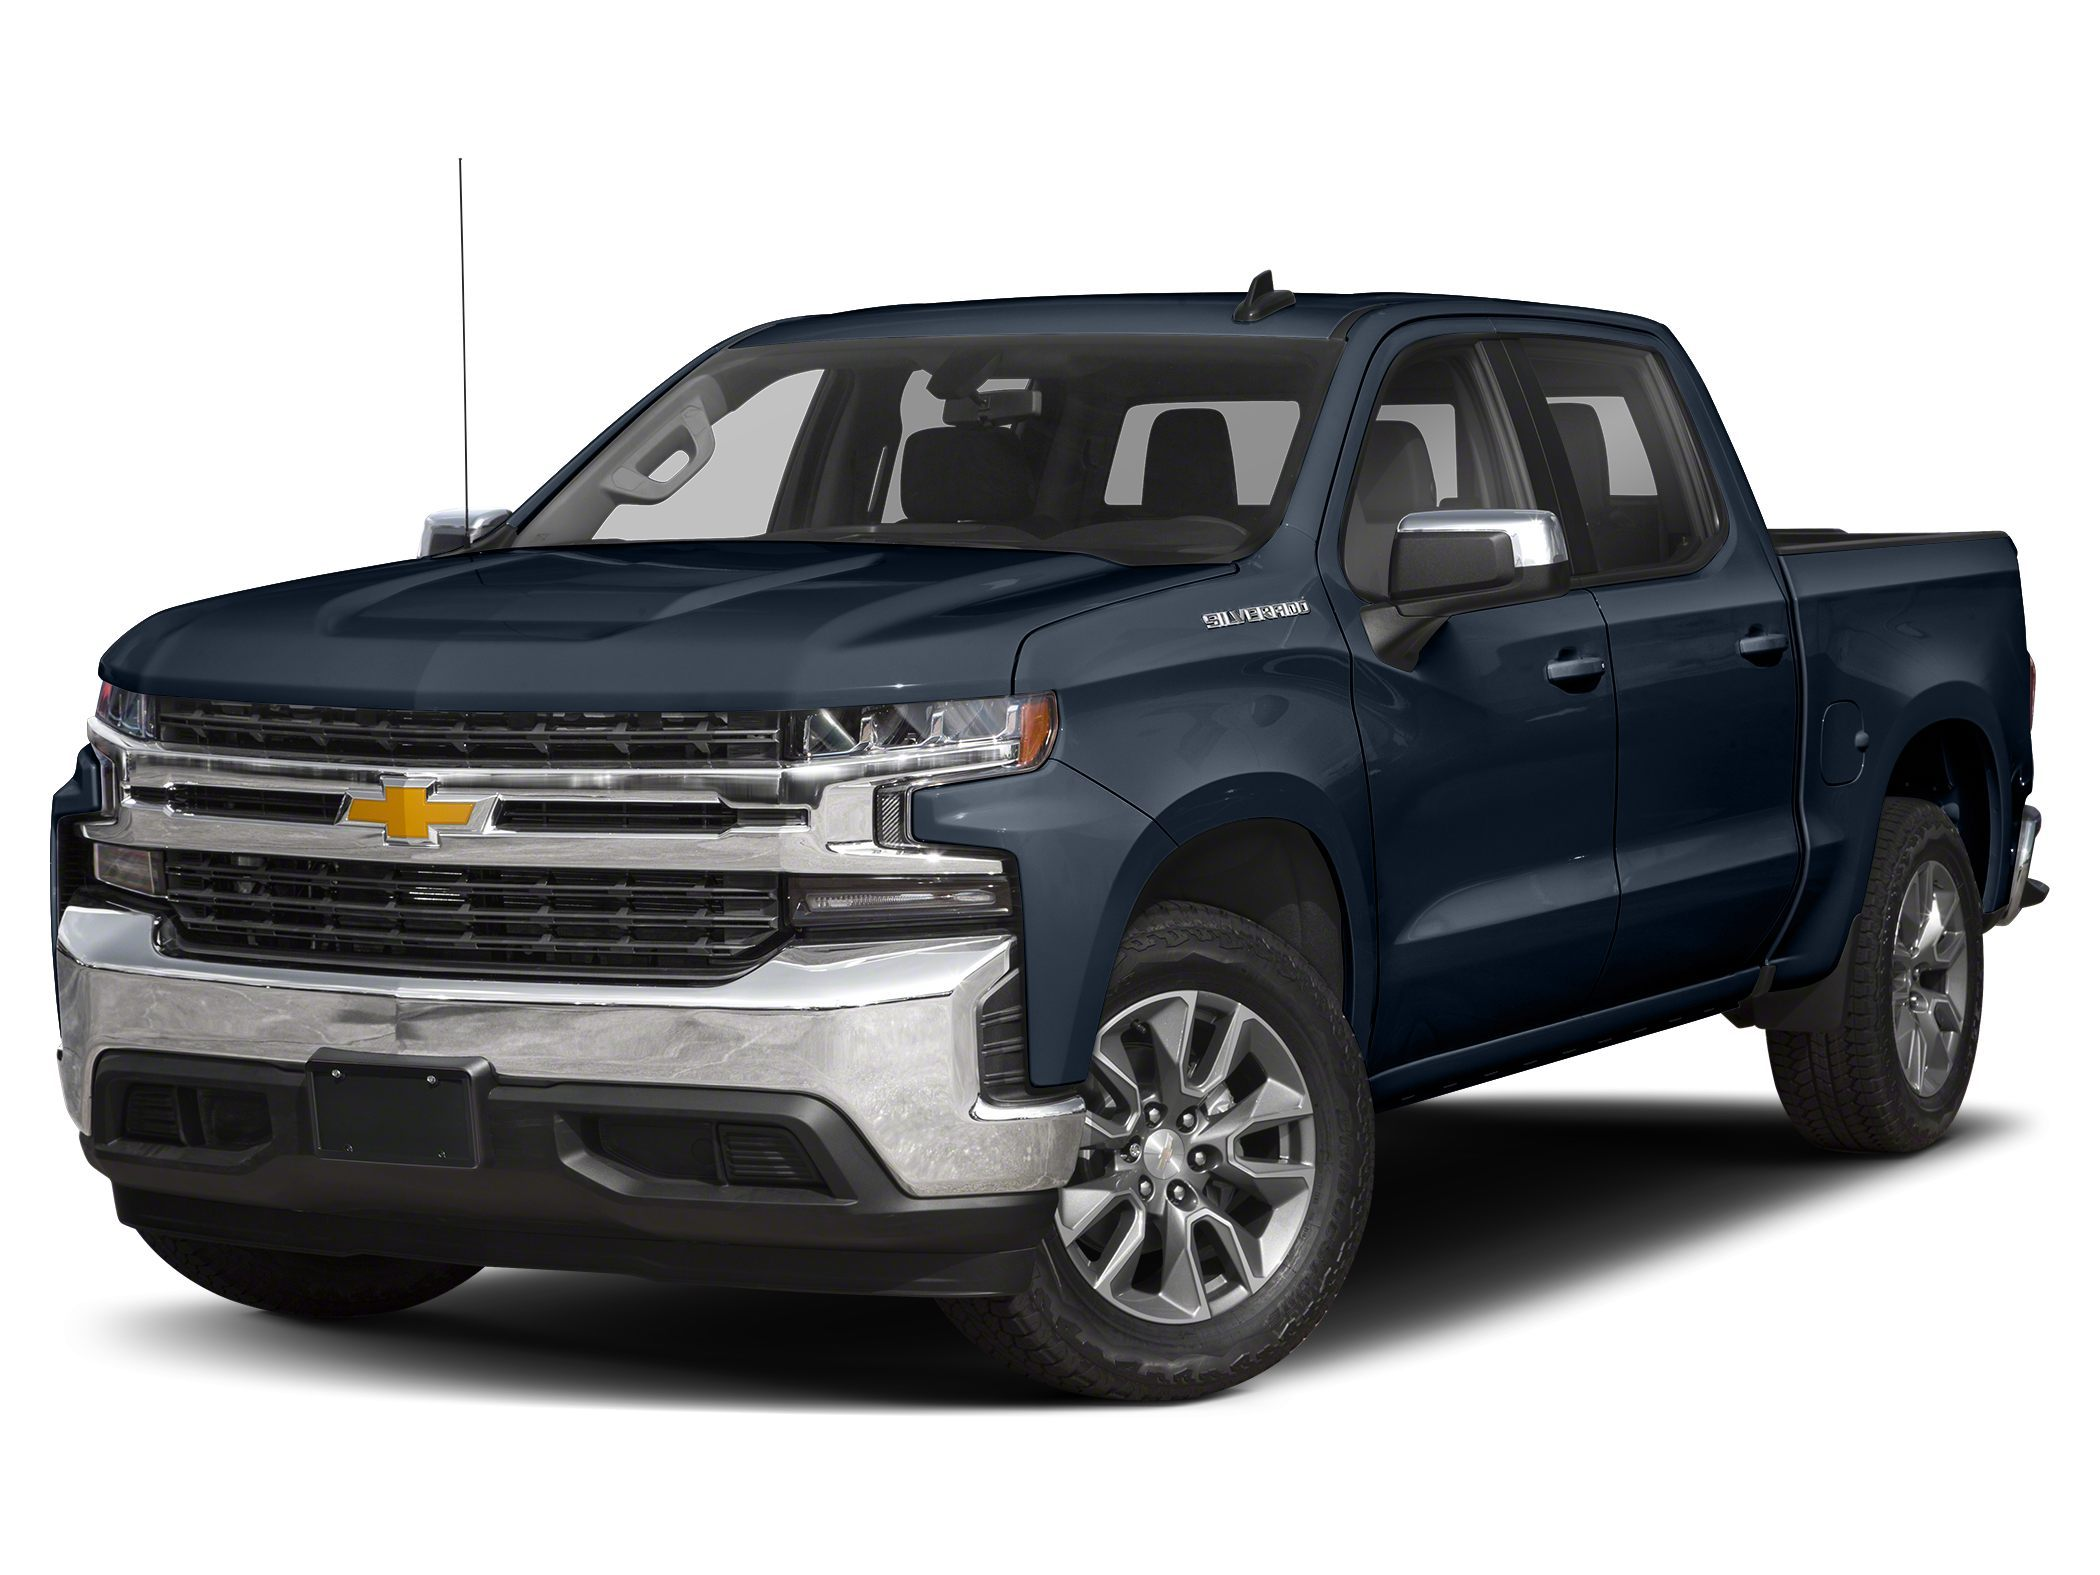 used 2019 chevrolet silverado 1500 lt trail boss truck crew cab in red bluff near chico redding paradise ca vin 1gcpyfed4kz381081 used 2019 chevrolet silverado 1500 lt trail boss truck crew cab in red bluff near chico redding paradise ca vin 1gcpyfed4kz381081